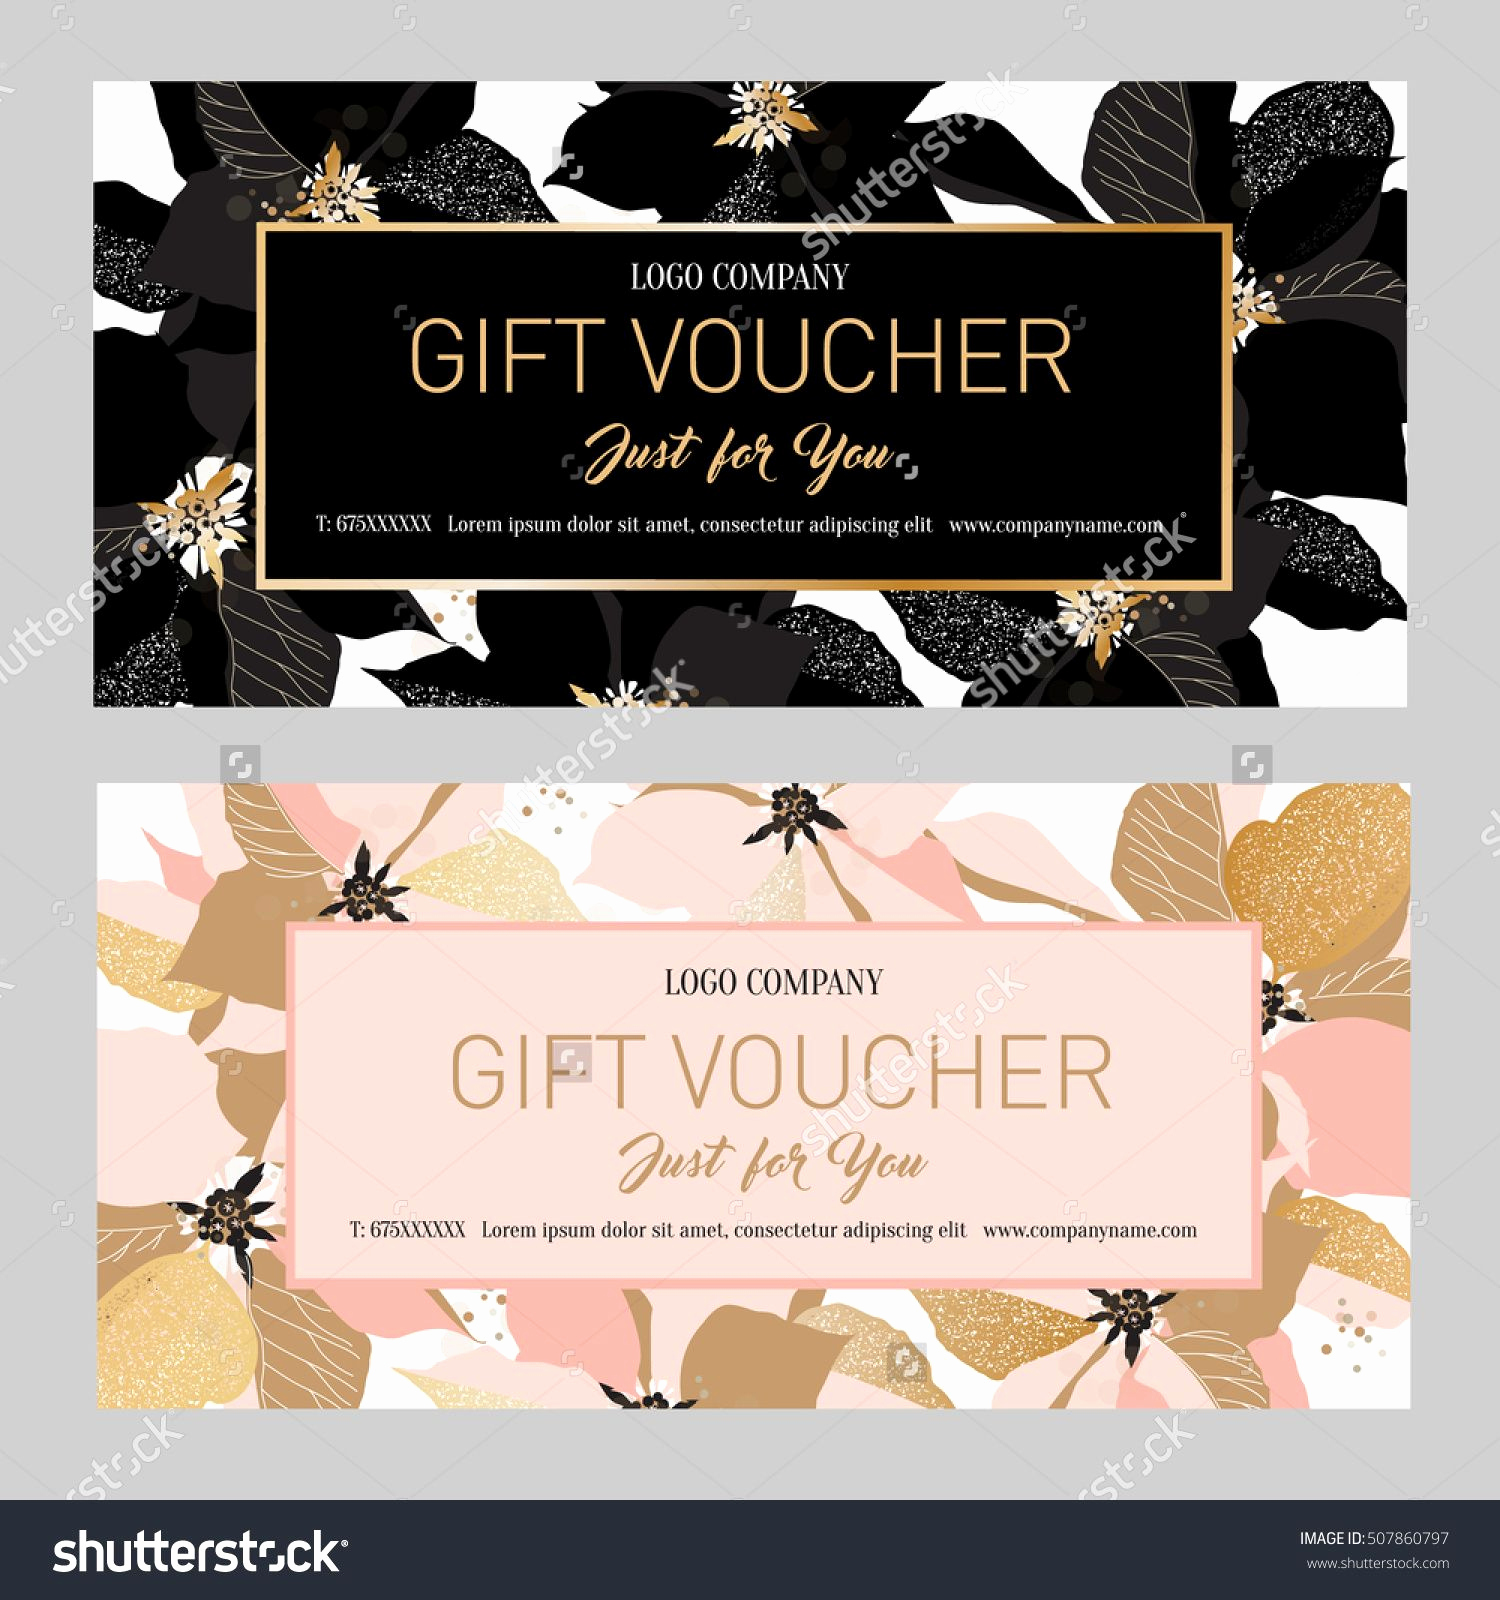 Makeup Gift Certificate Template Luxury Beauty Gift Voucher Template Free